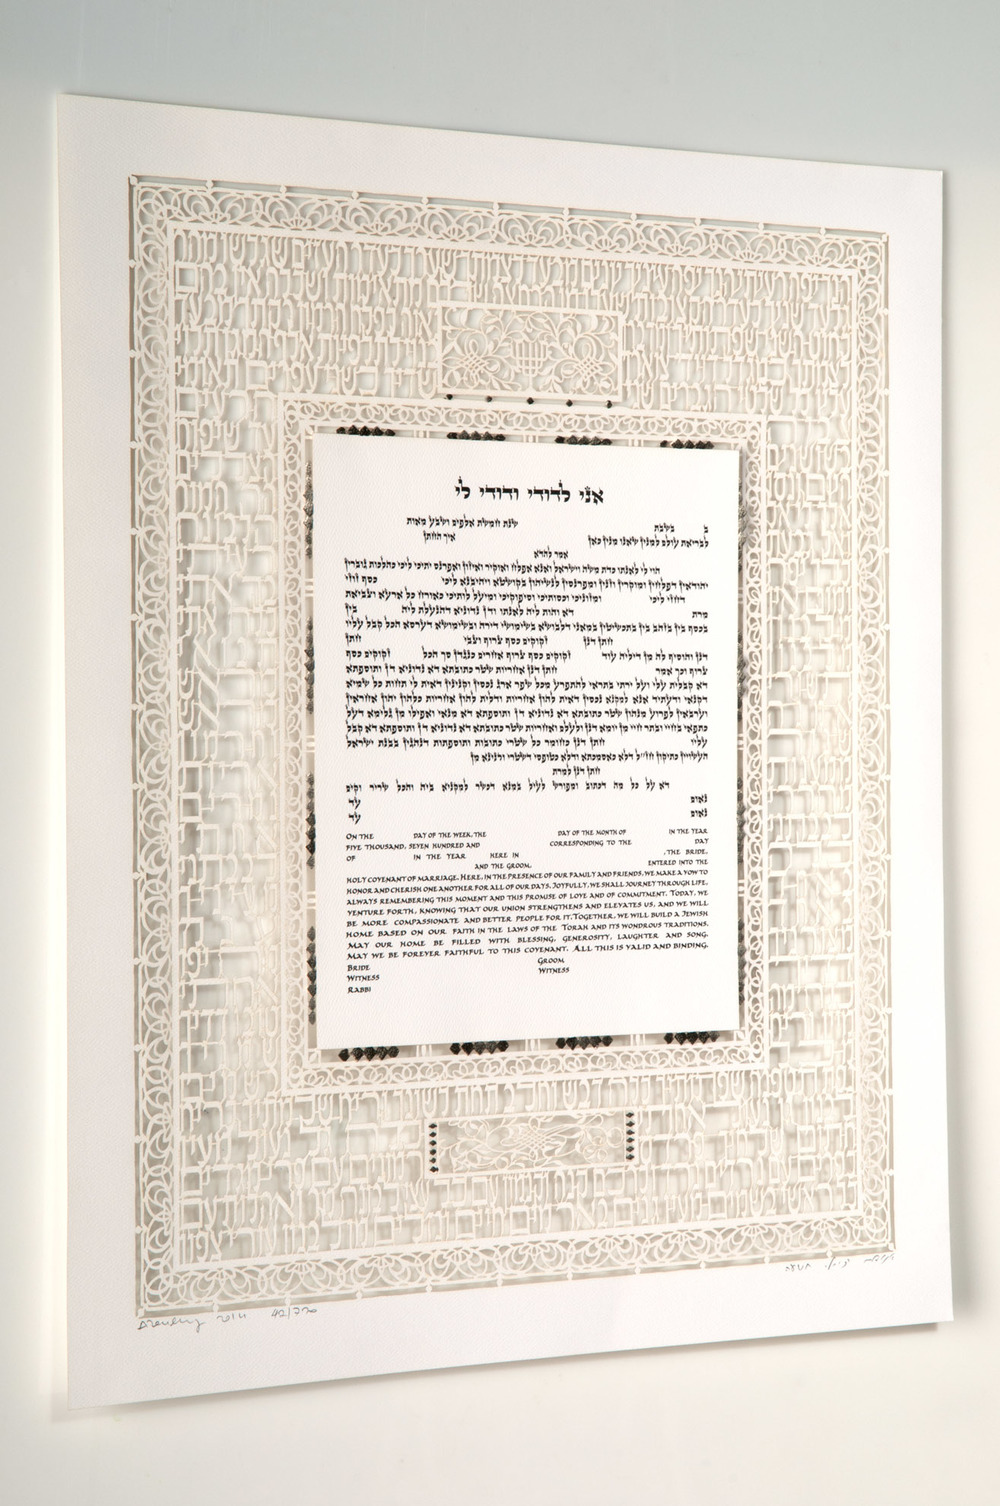 The Ani Ledodi papercut ketubah